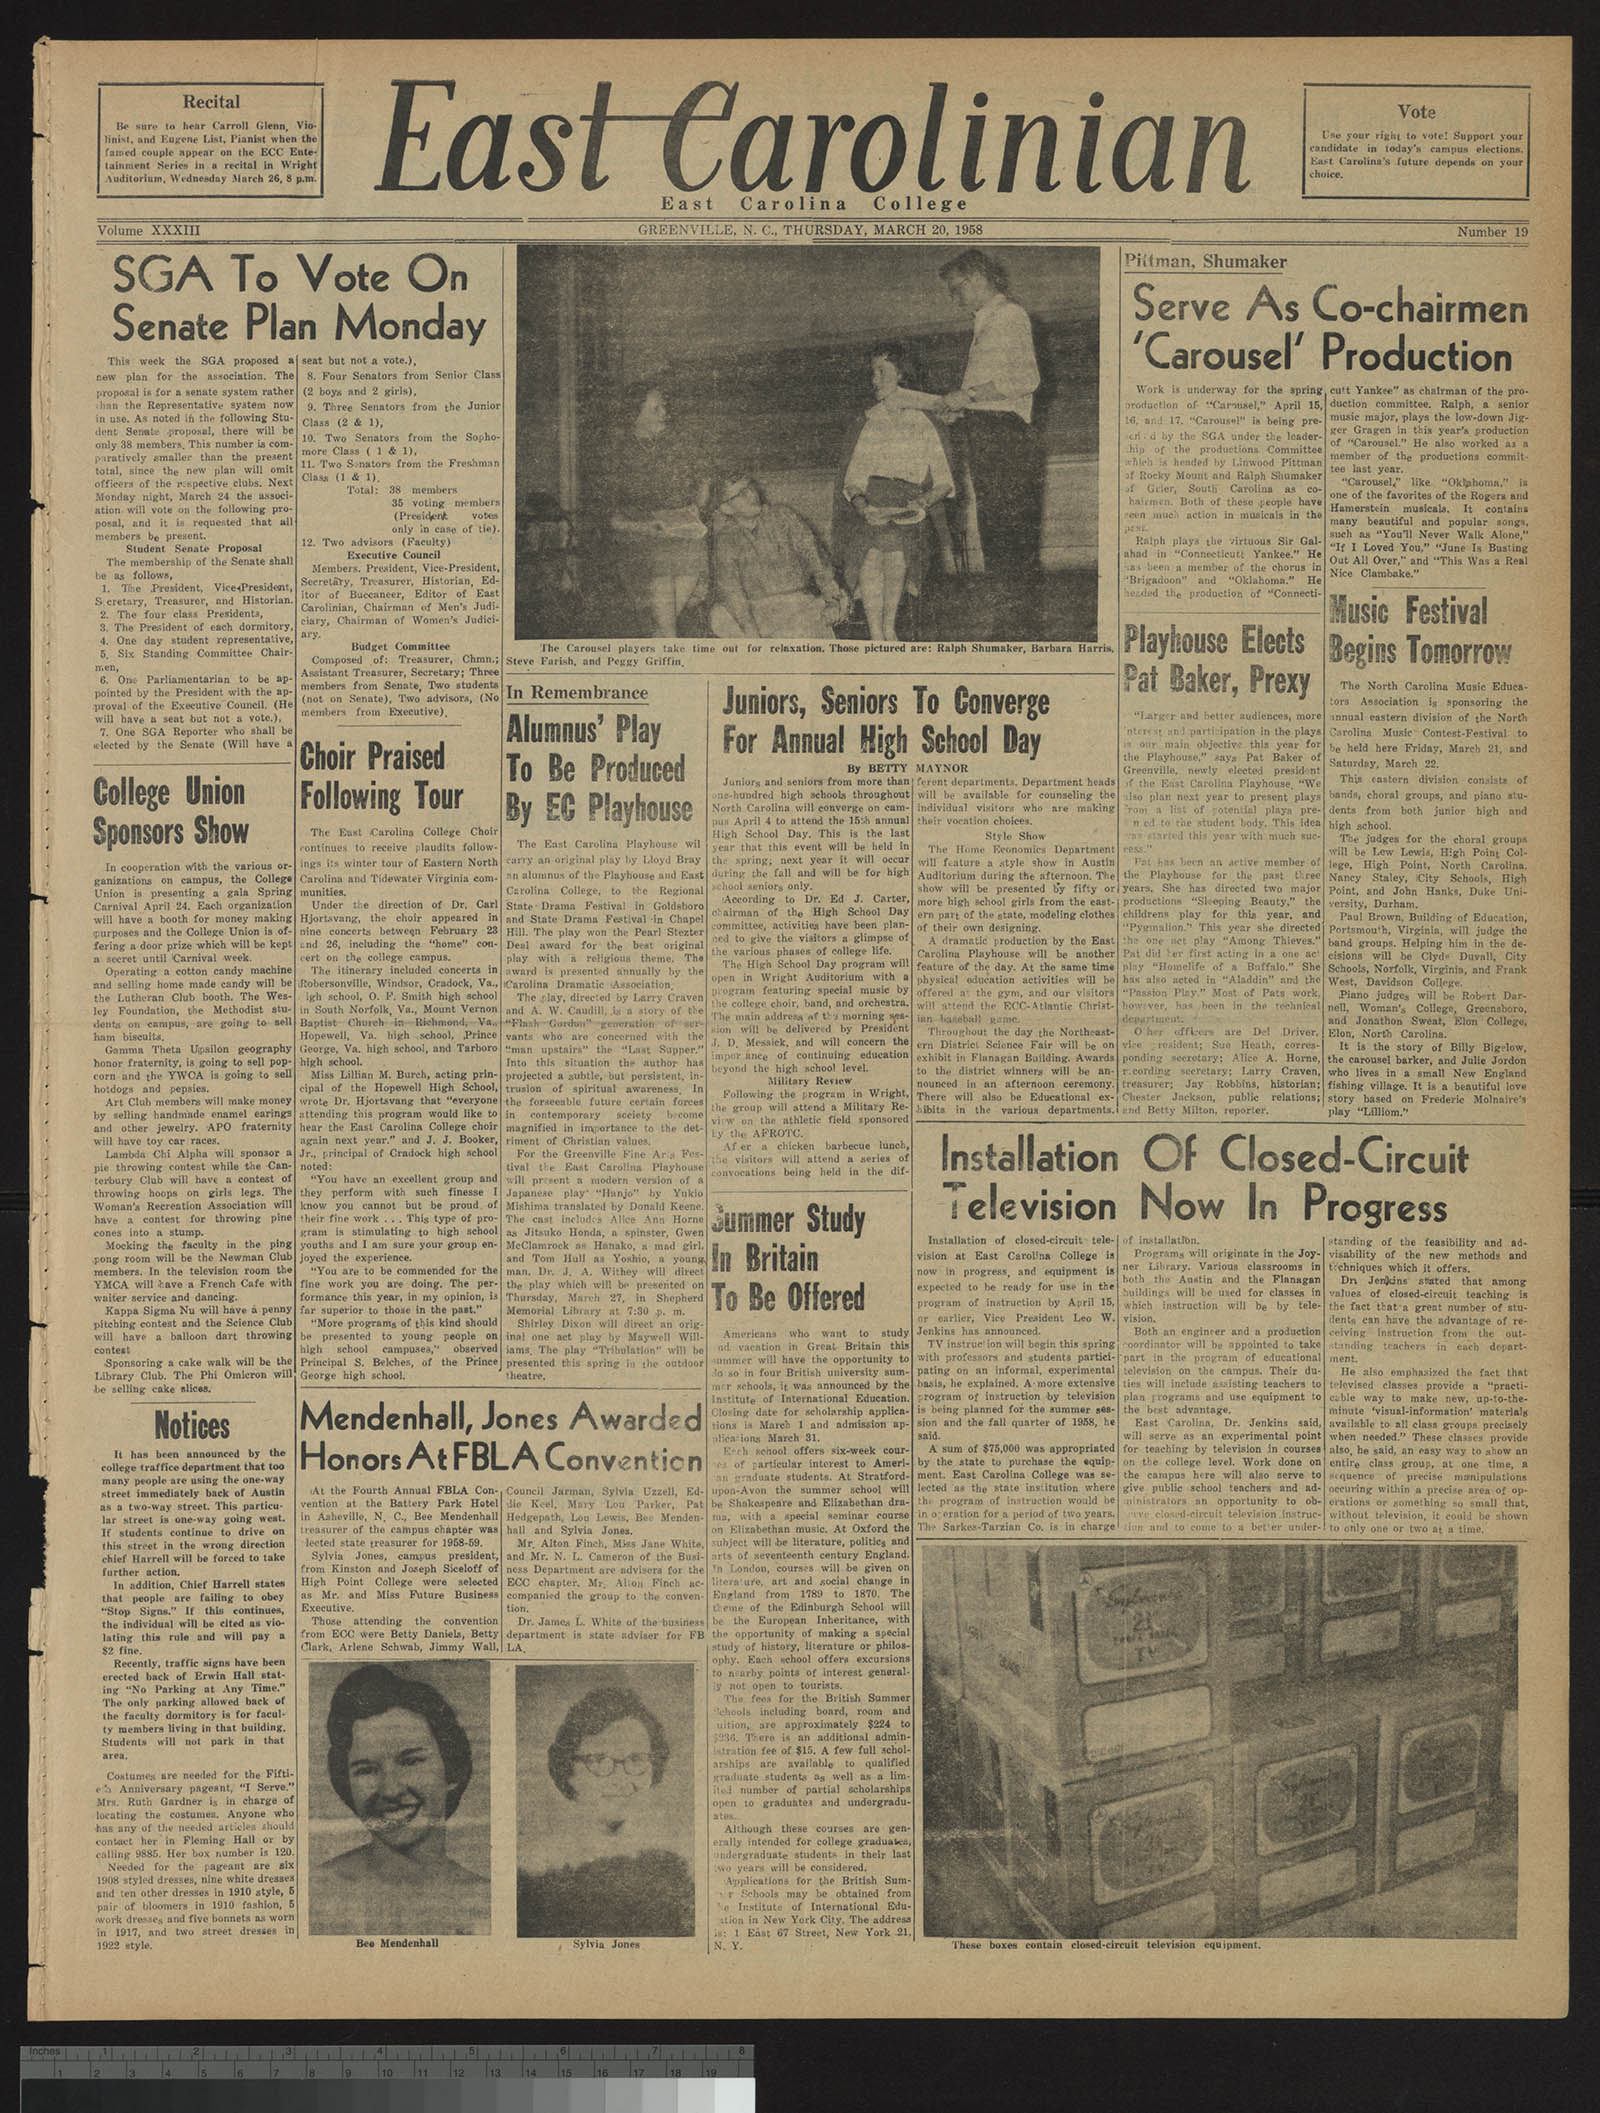 East Carolinian front page, 1958